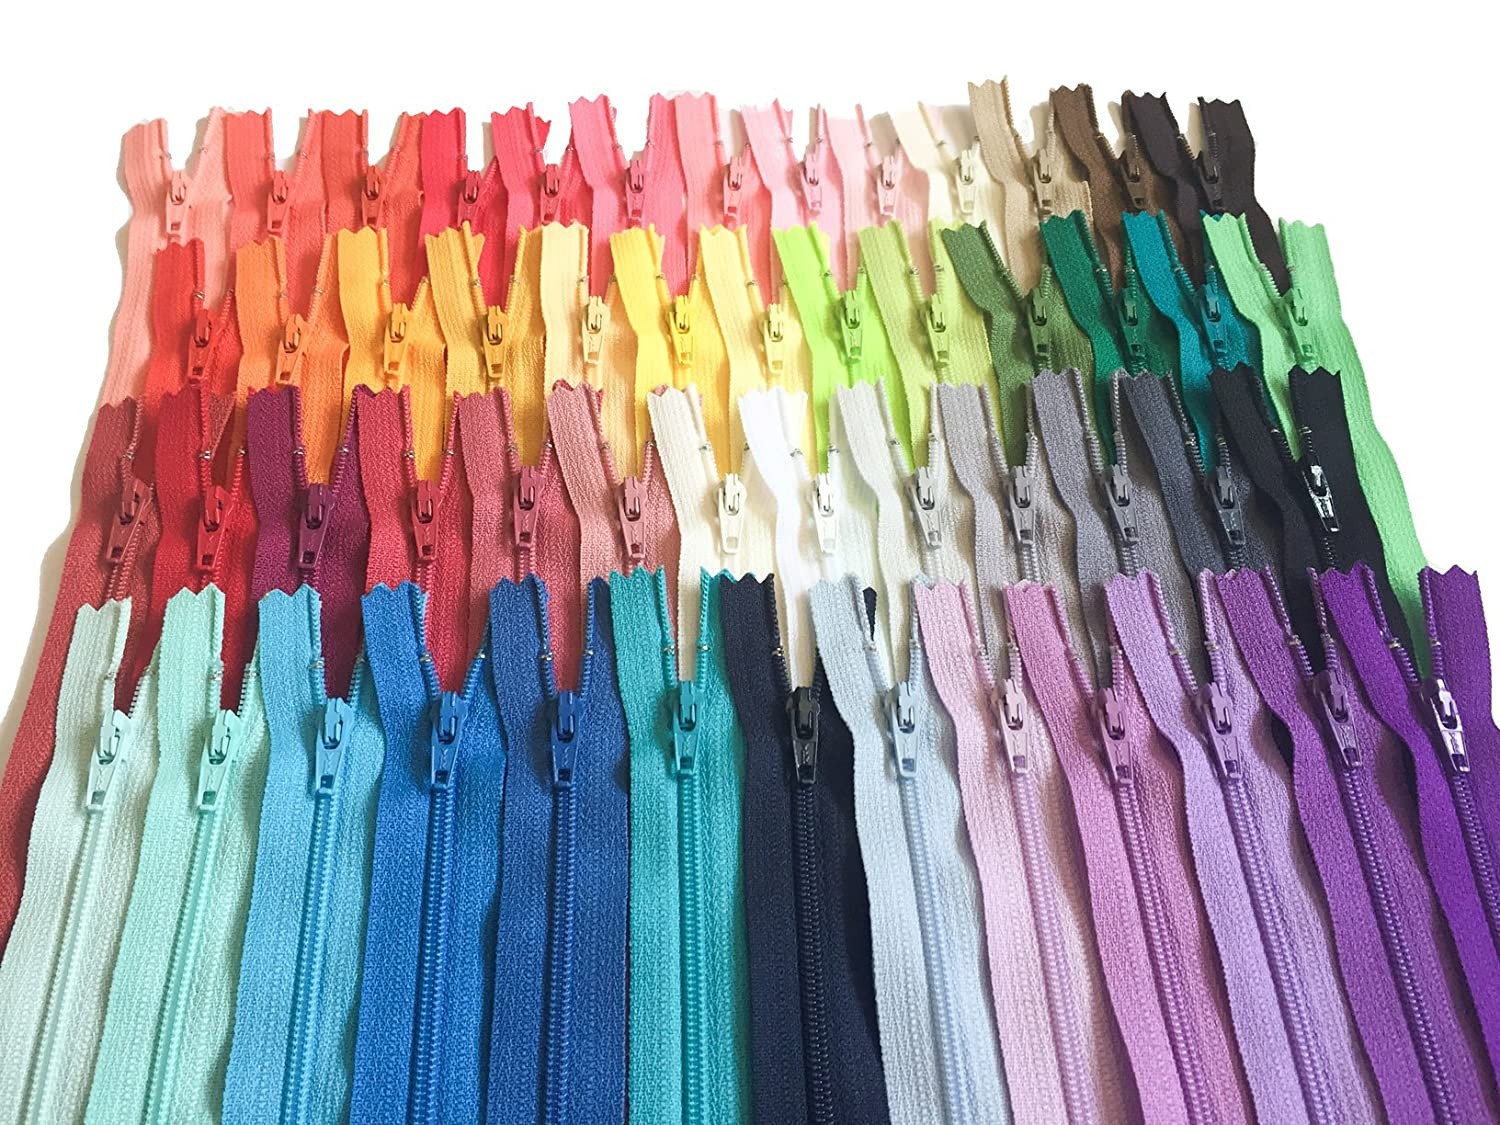 6 Inch Assortment of Colors YKK Zippers Number 3 Nylon Coil Set of 110 Pieces